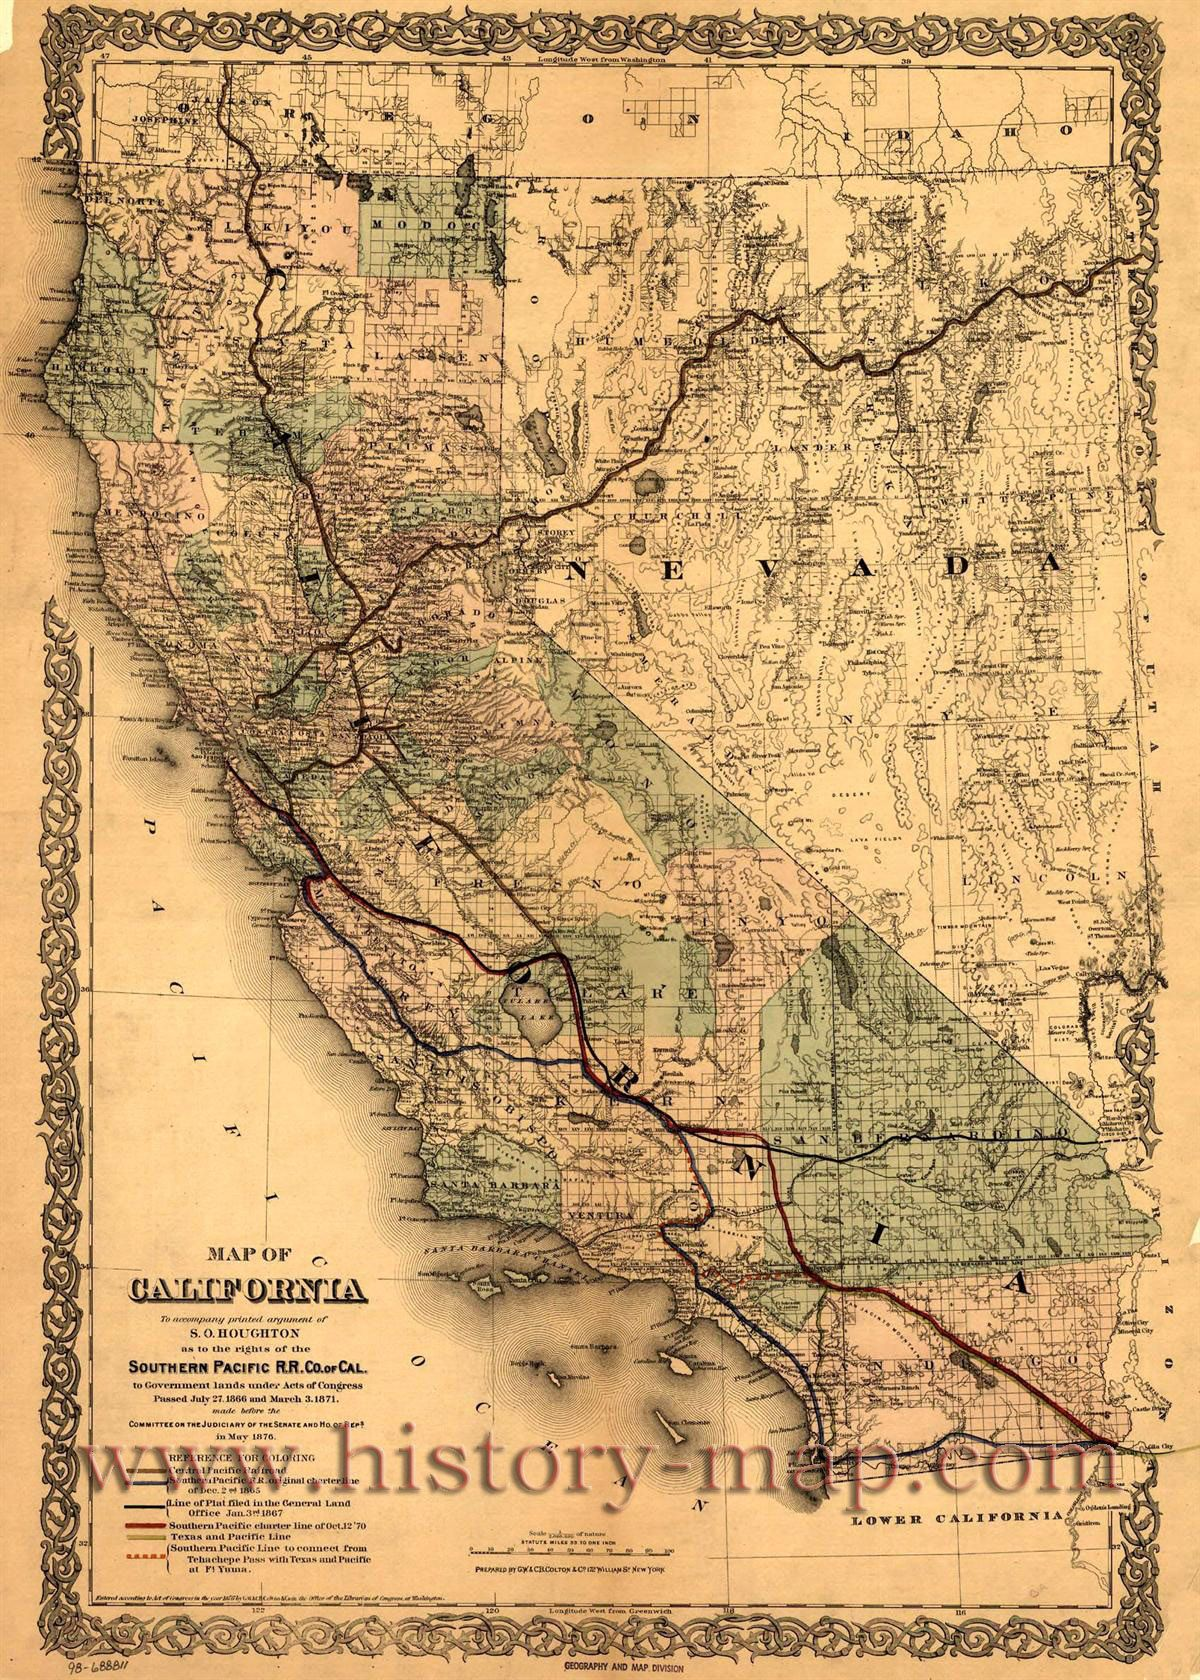 Pin canadian national railroad map on pinterest - Southern Pacific Railroad Map Of California And Surrounding States 1876